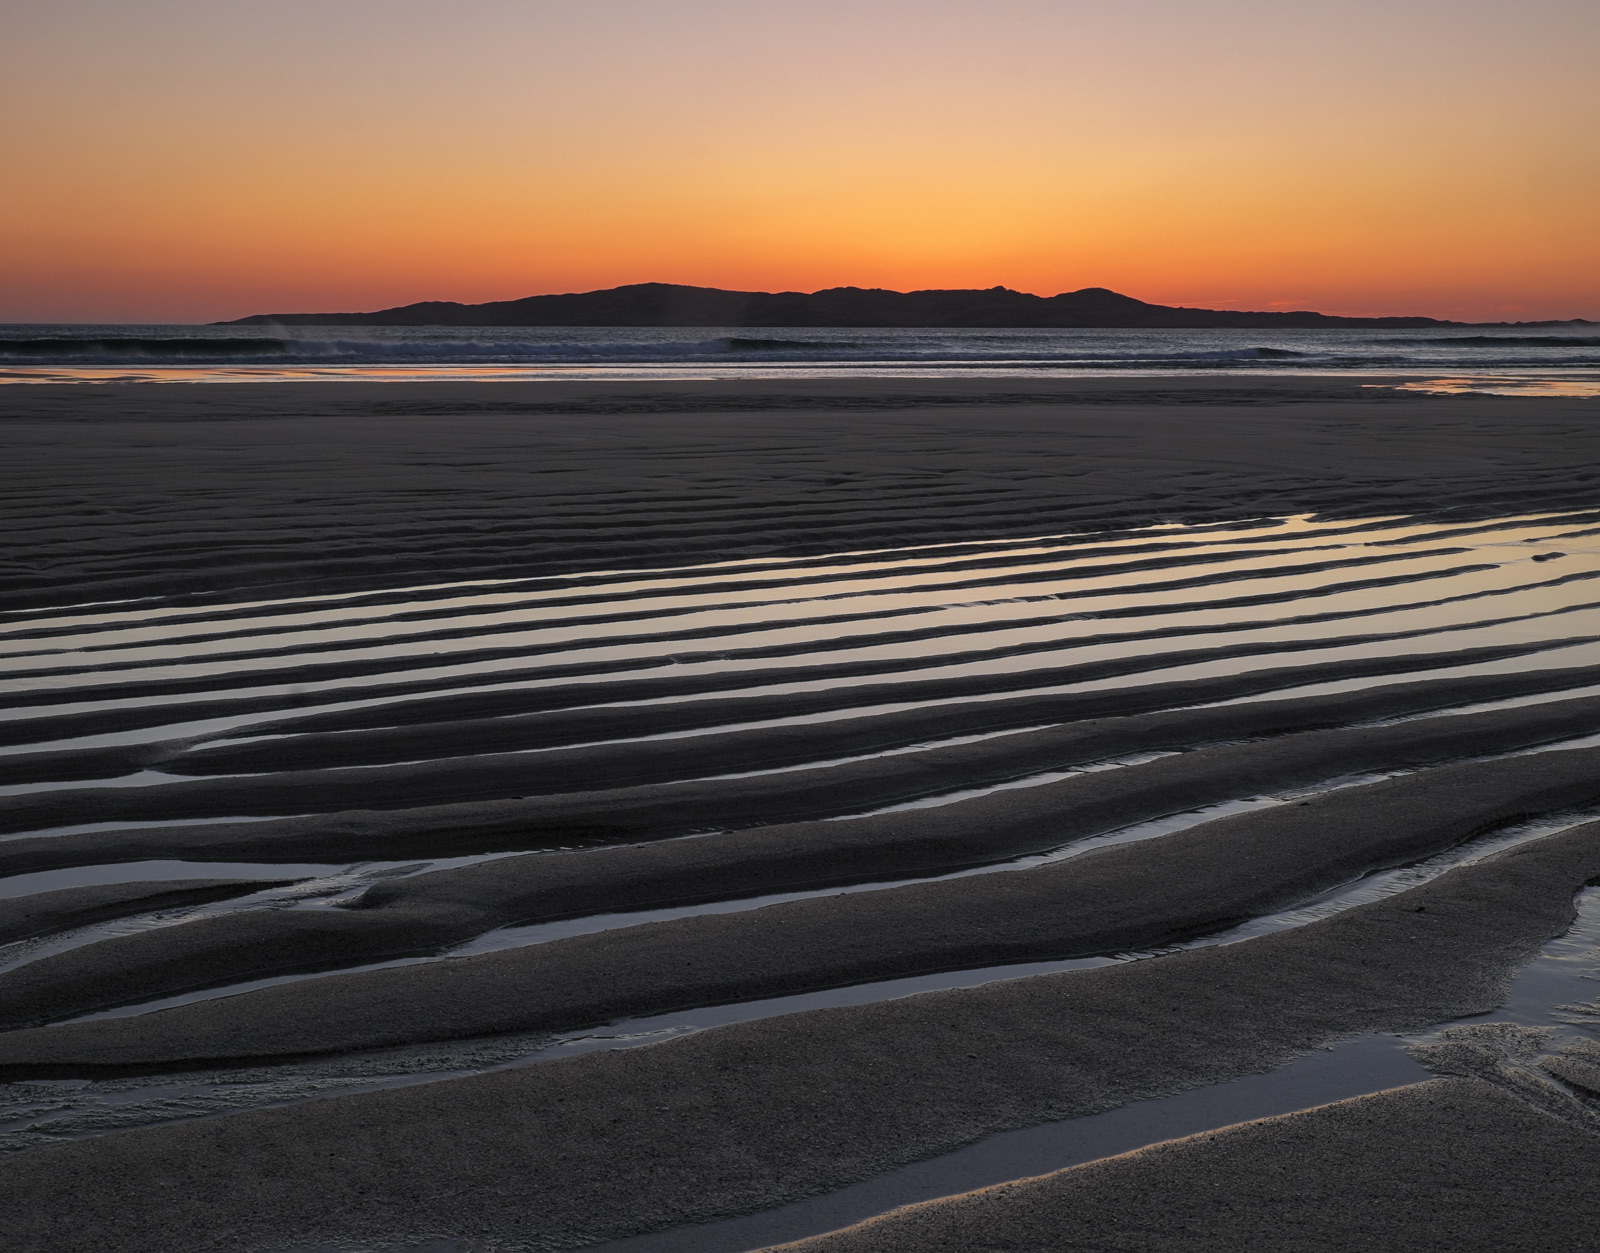 Satsuma Sandbars 3, Traigh Lar, Harris, Scotland, island, weather, bright, orange, twilight, tide, etched, lines, ribbed, photo